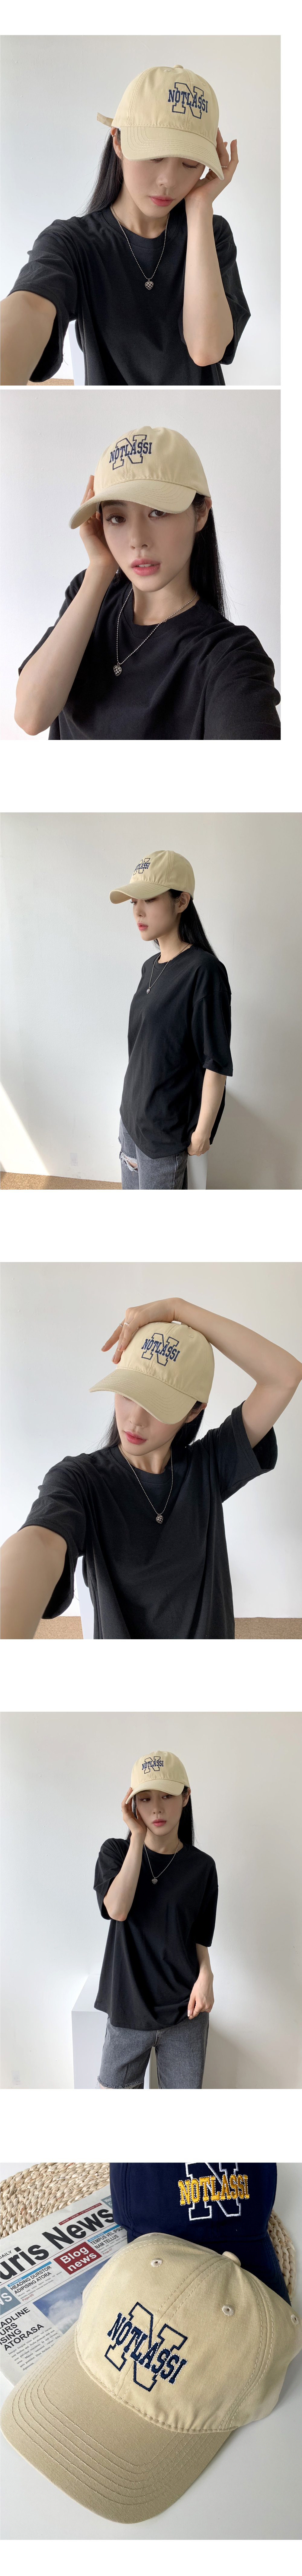 Enno Daily Lettering Deep Ball Cap